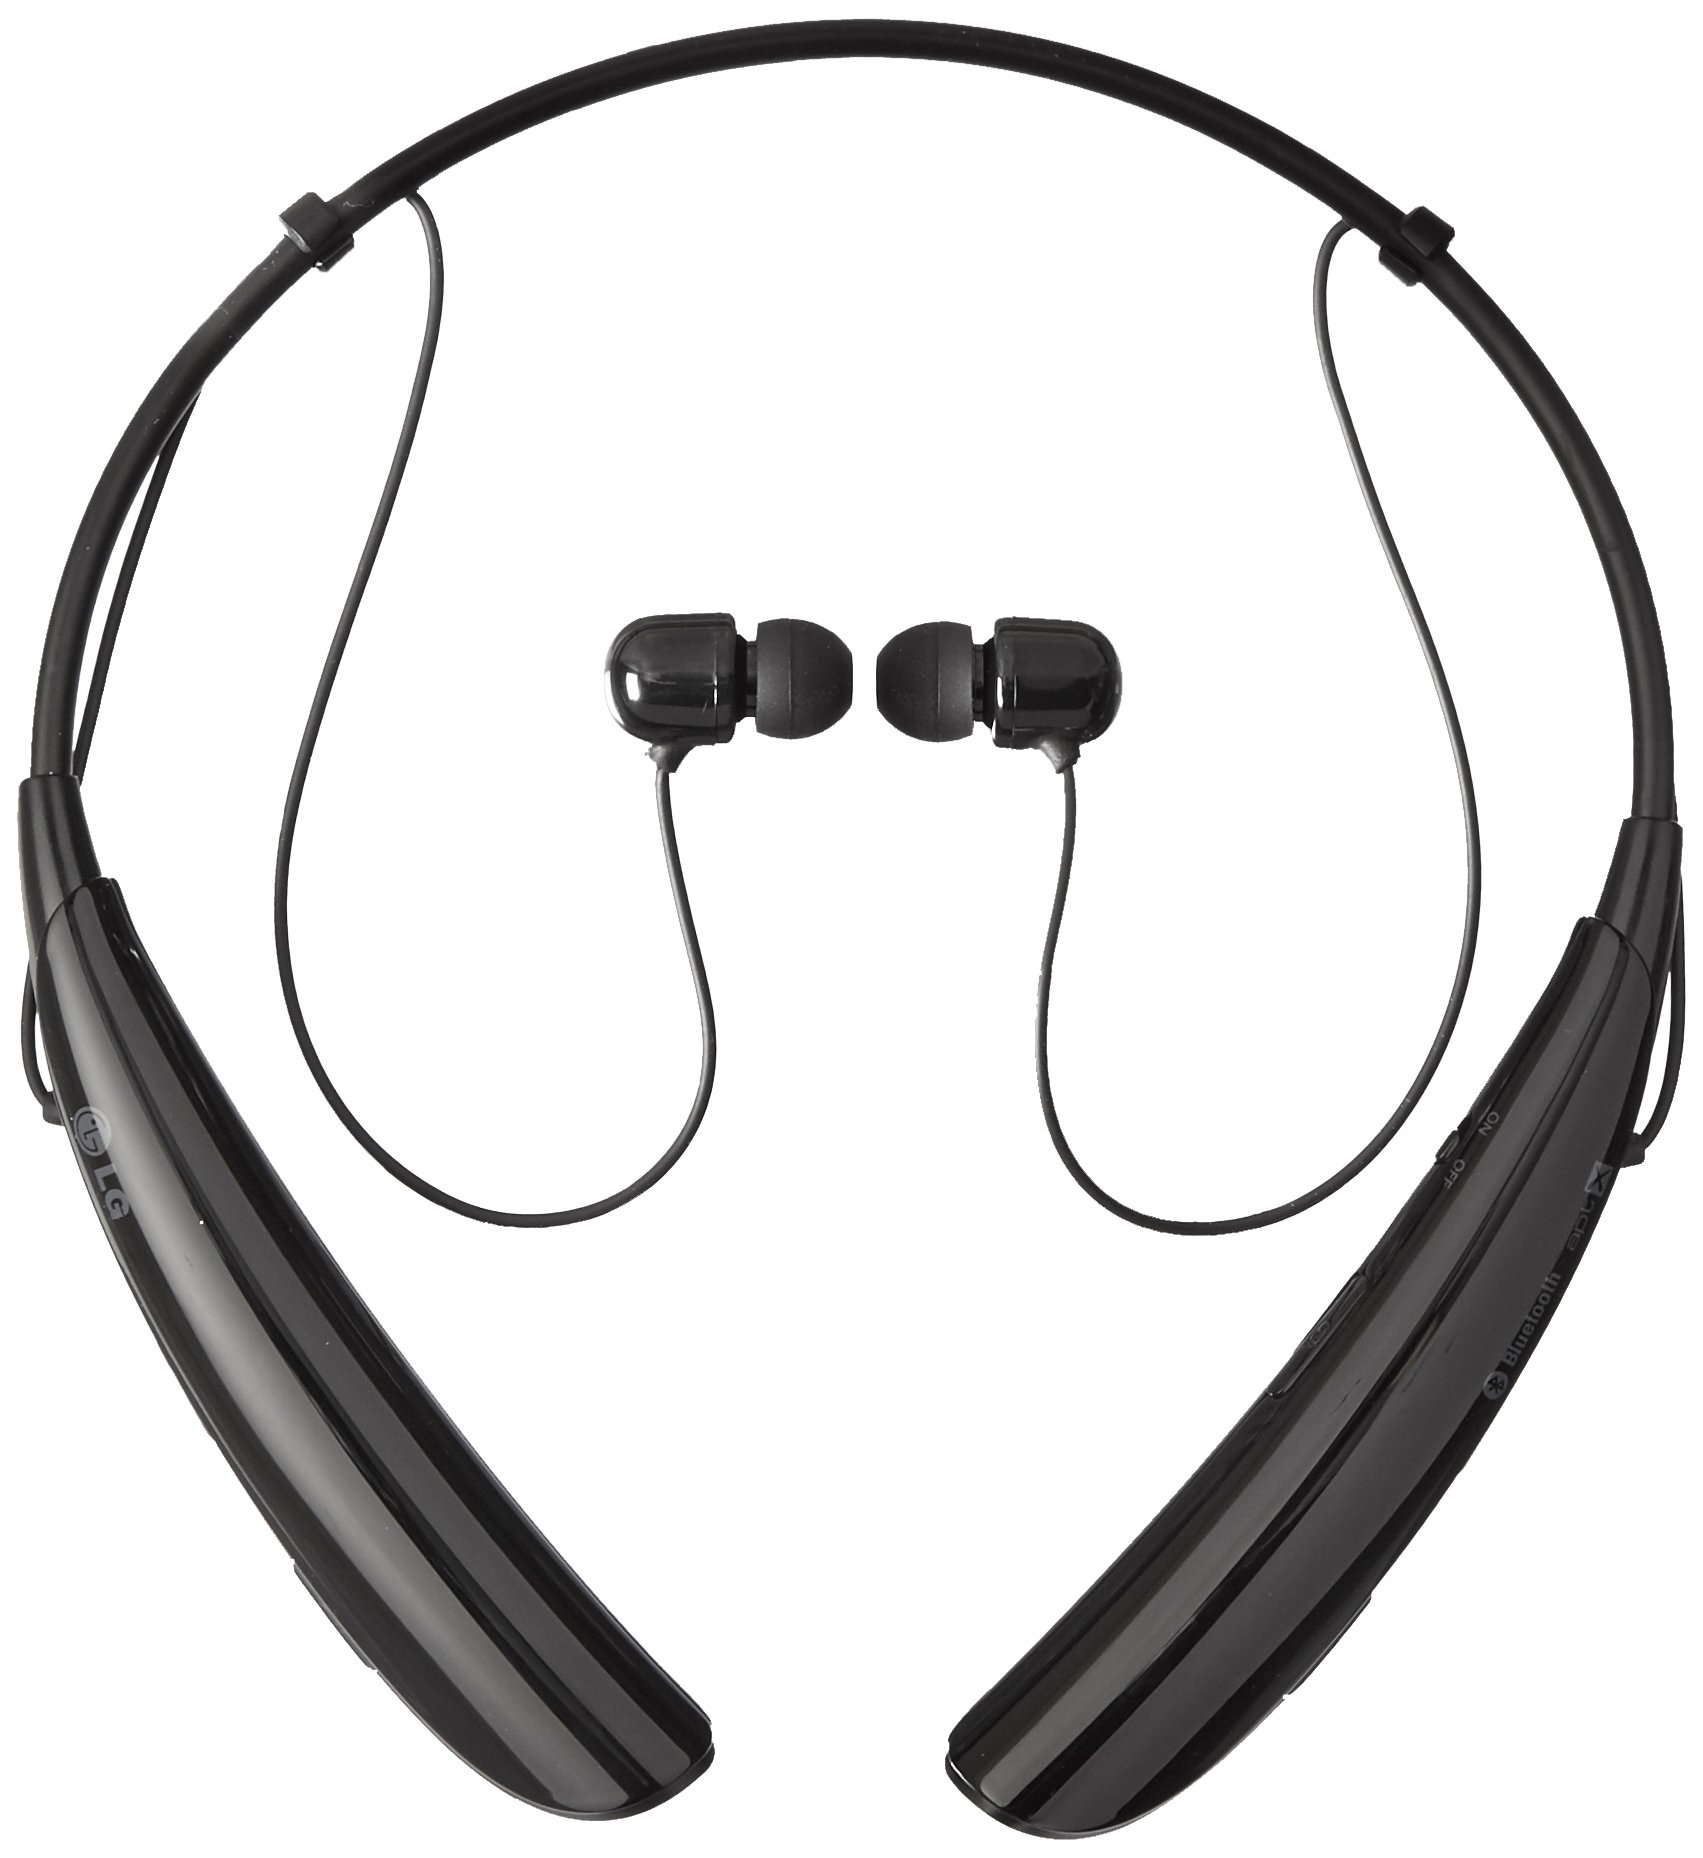 60348bfc091 LG Electronics Tone Pro HBS-750 Bluetooth Wireless Stereo Headset - Retail  Packaging - Black